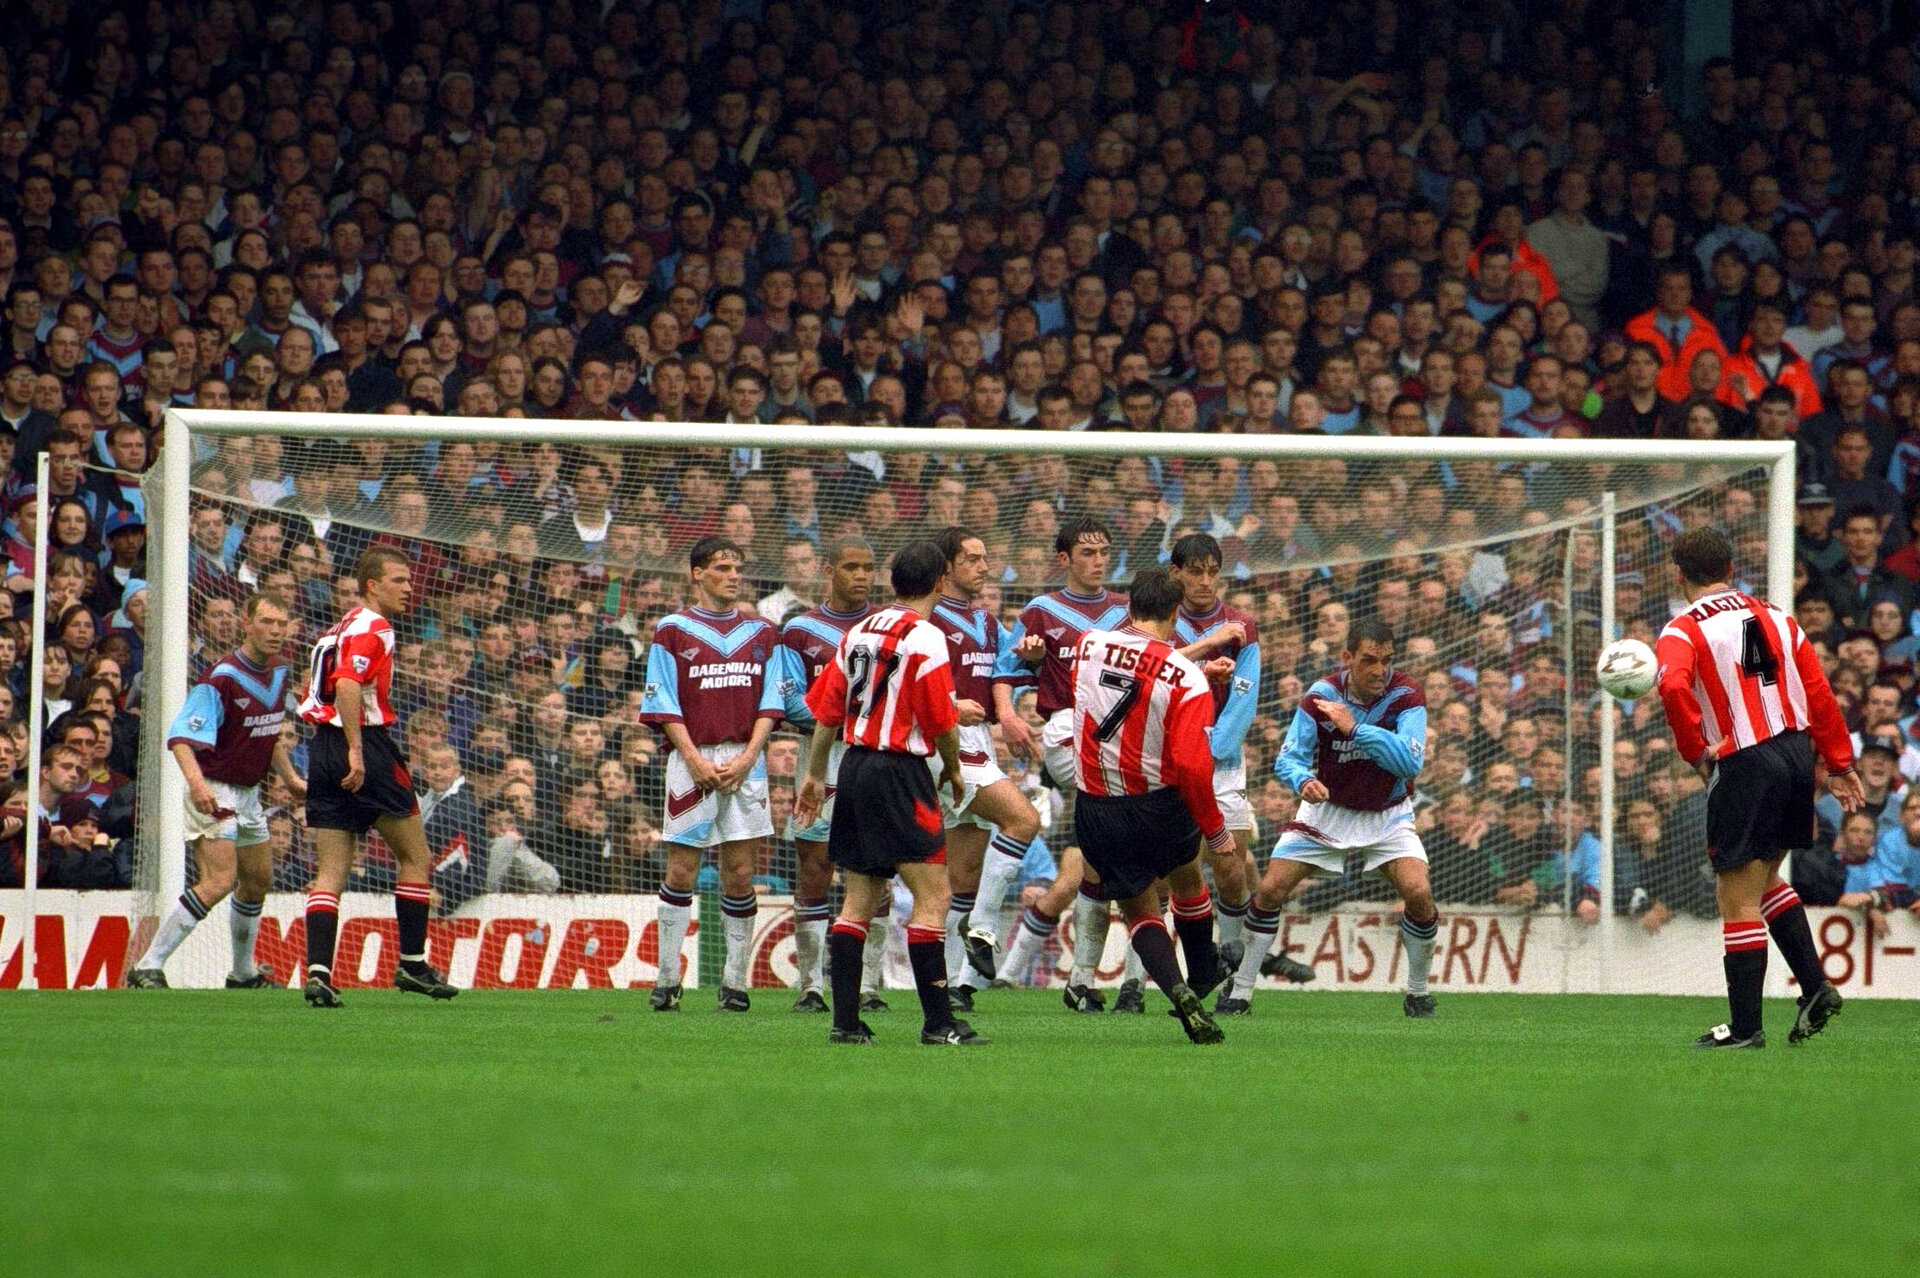 Football - West Ham v Southampton , FA Premier League , 7/5/94  Mandatory Credit: Action Images  Southampton's Matthew Le Tissier scores from a free kick